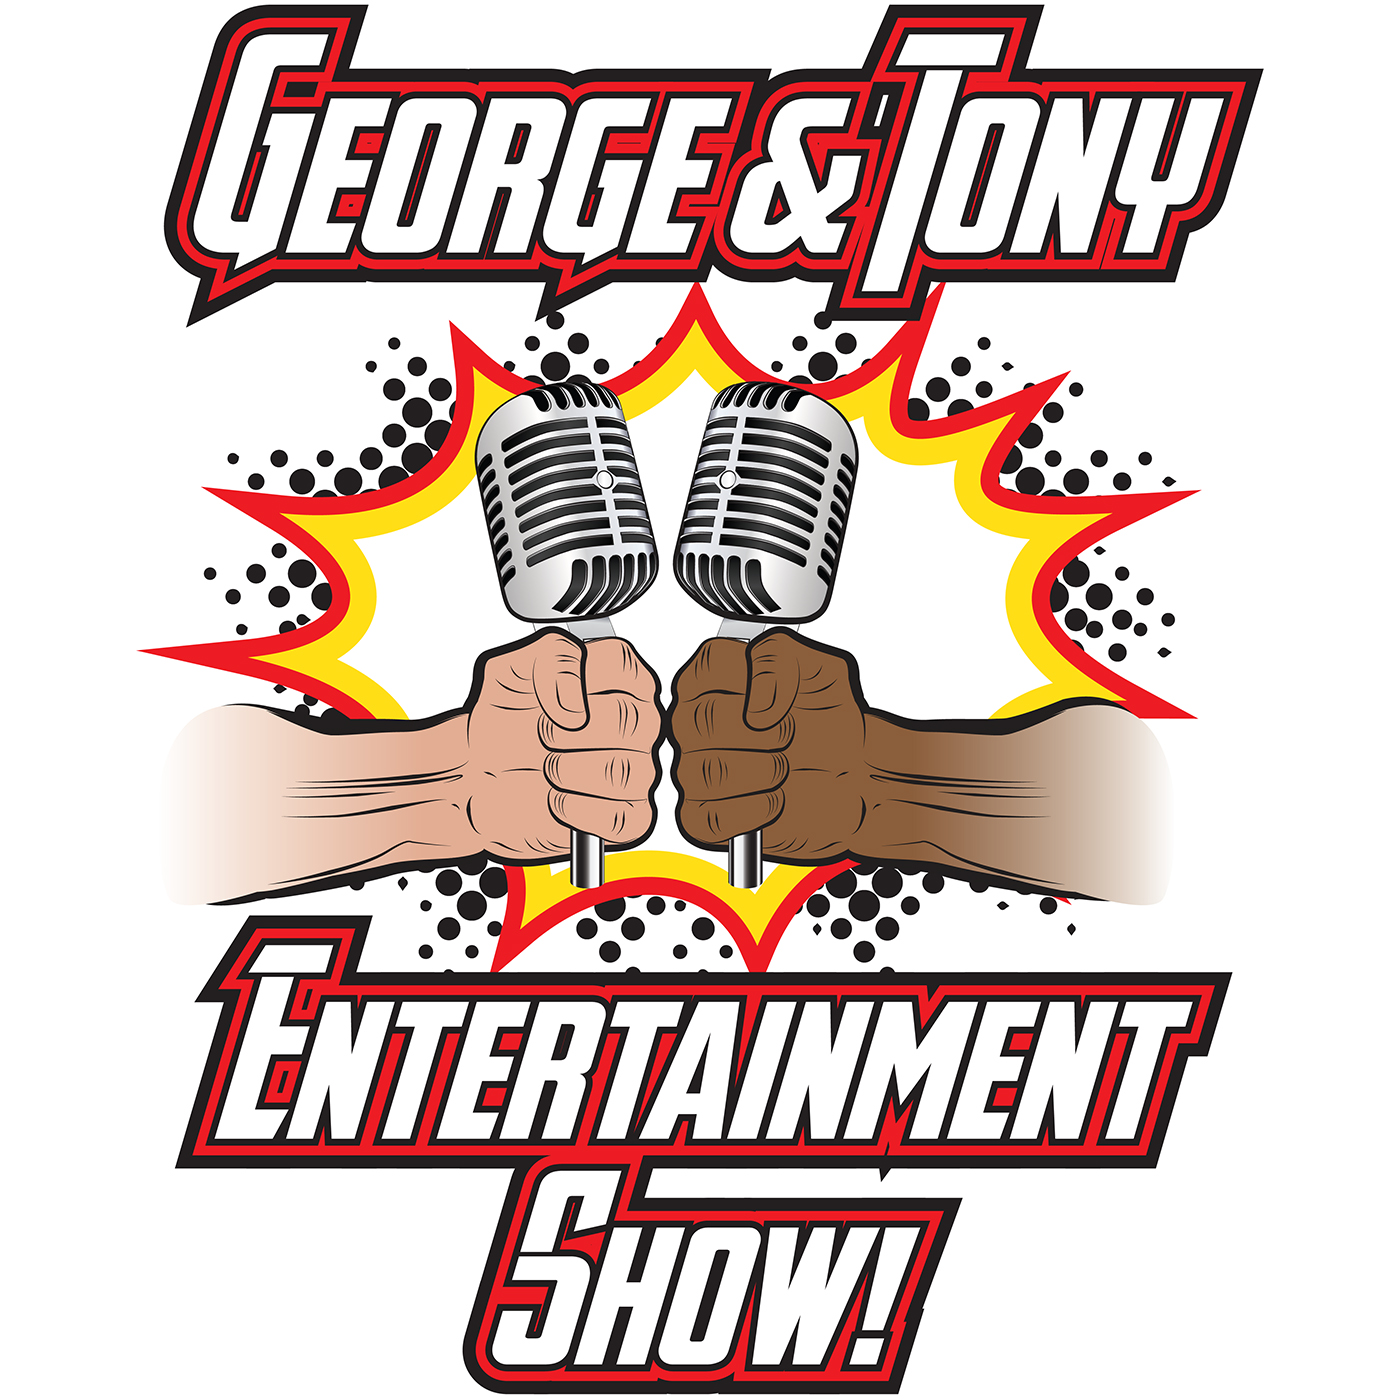 George and Tony Entertainment Show #156